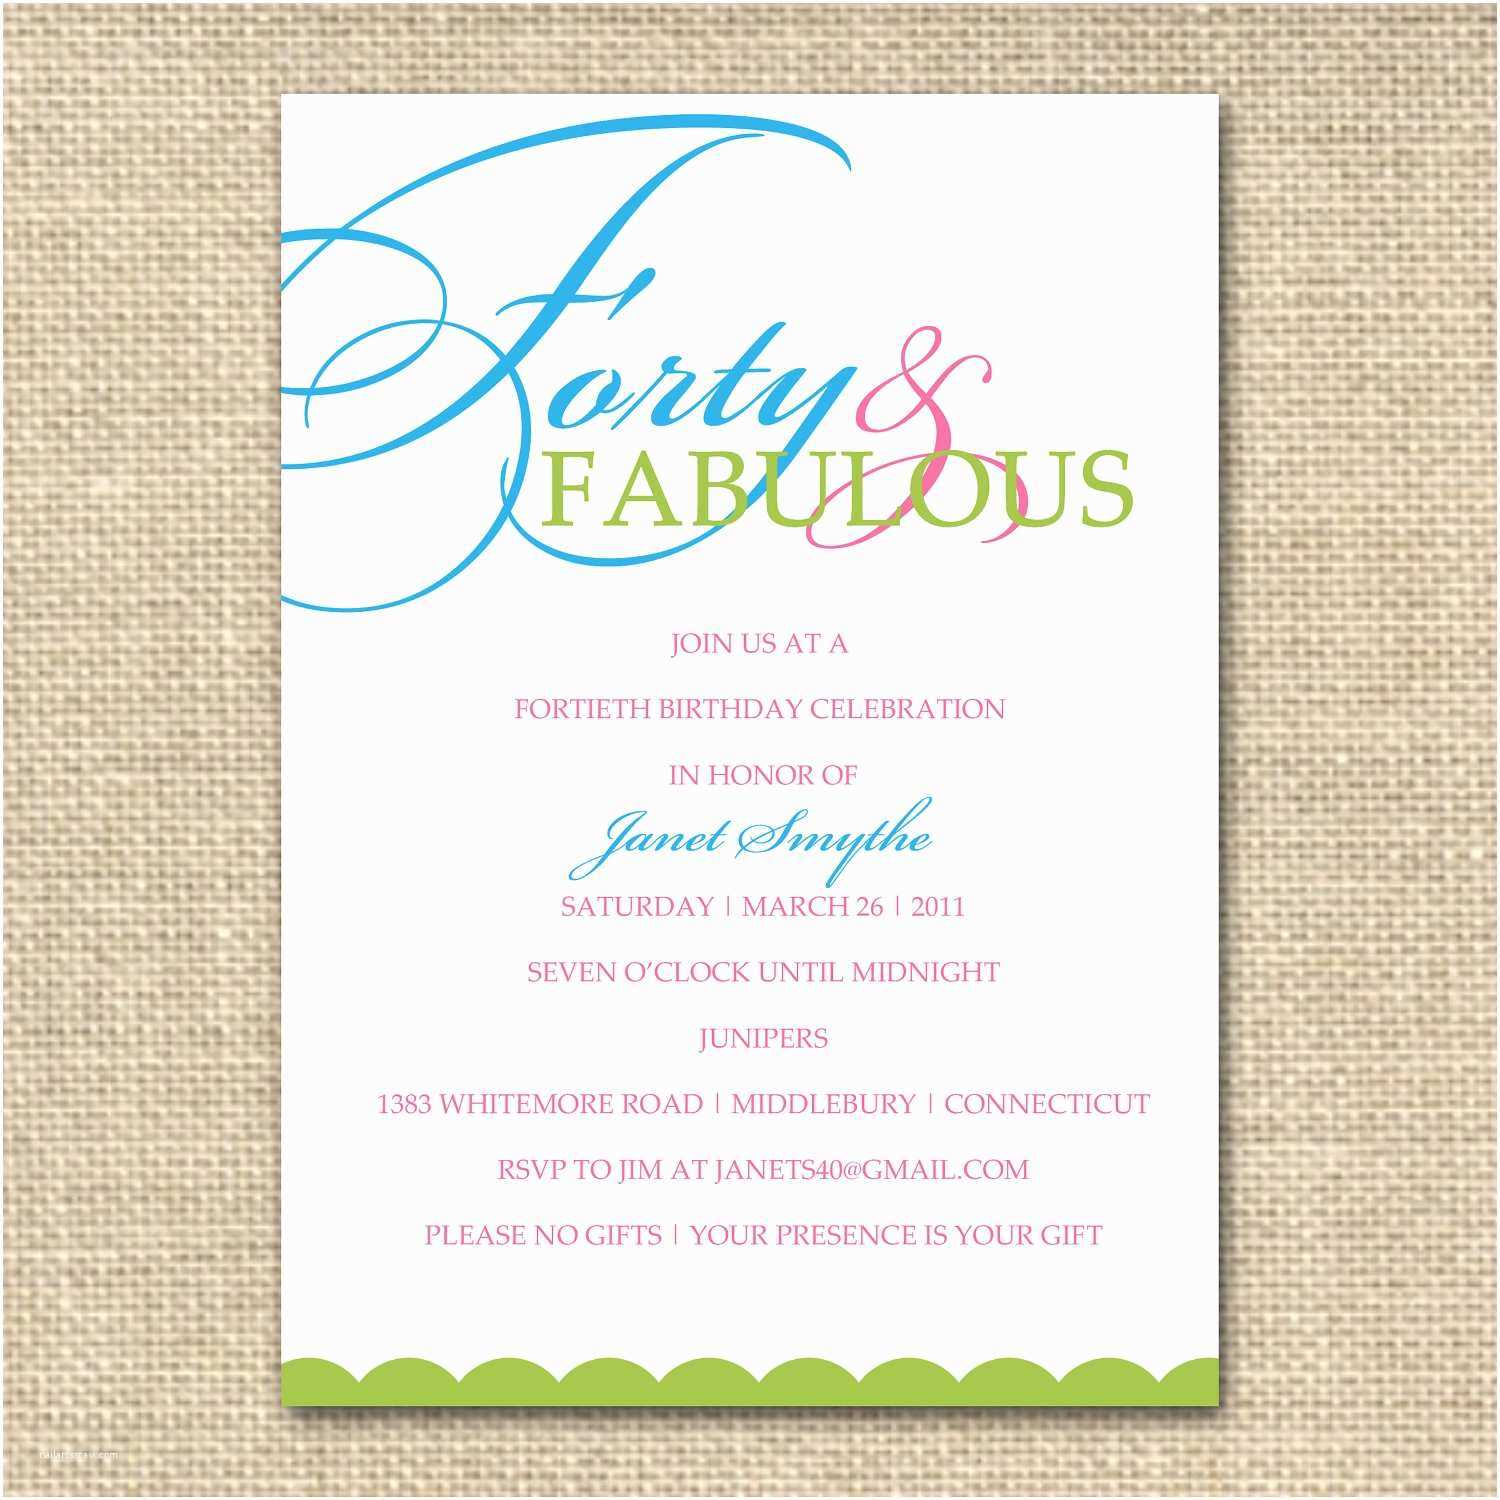 Corporate Party Invitation Wording Ideas 10 Birthday Invite Wording Decision – Free Wording